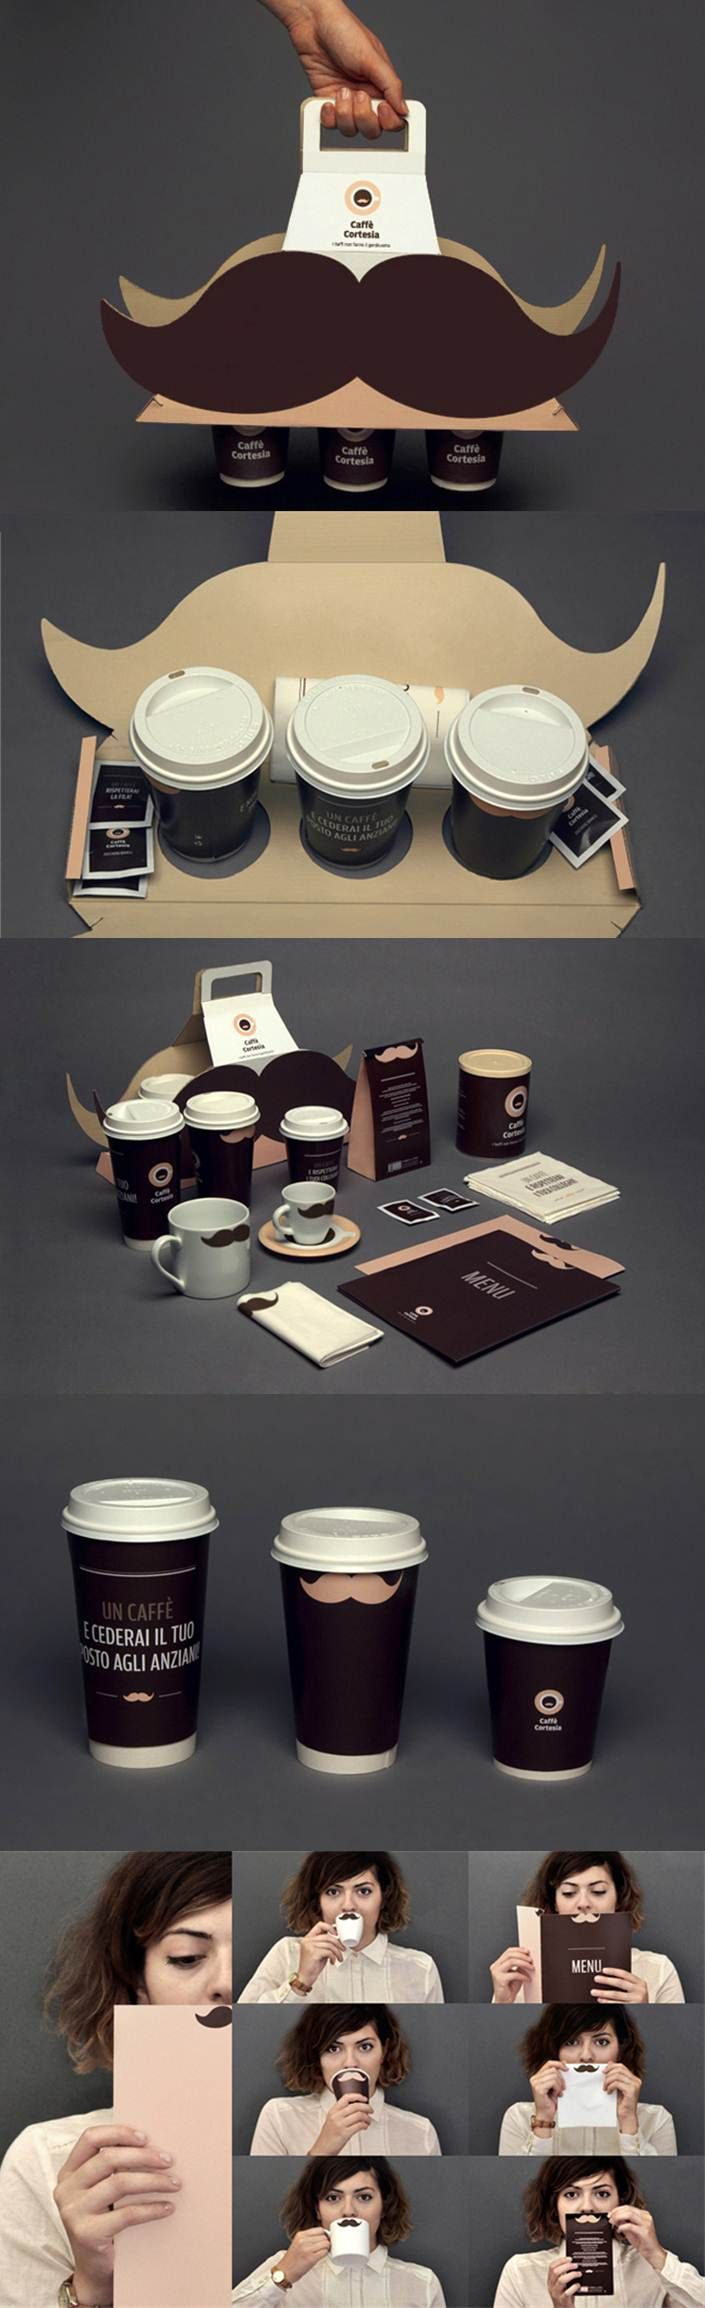 Designed By Augusto Arduini A Graduate Of Politecnico Di Milano Italy Http Www Packagingoftheworld Com Coffee Design Coffee Shop Design Coffee Packaging